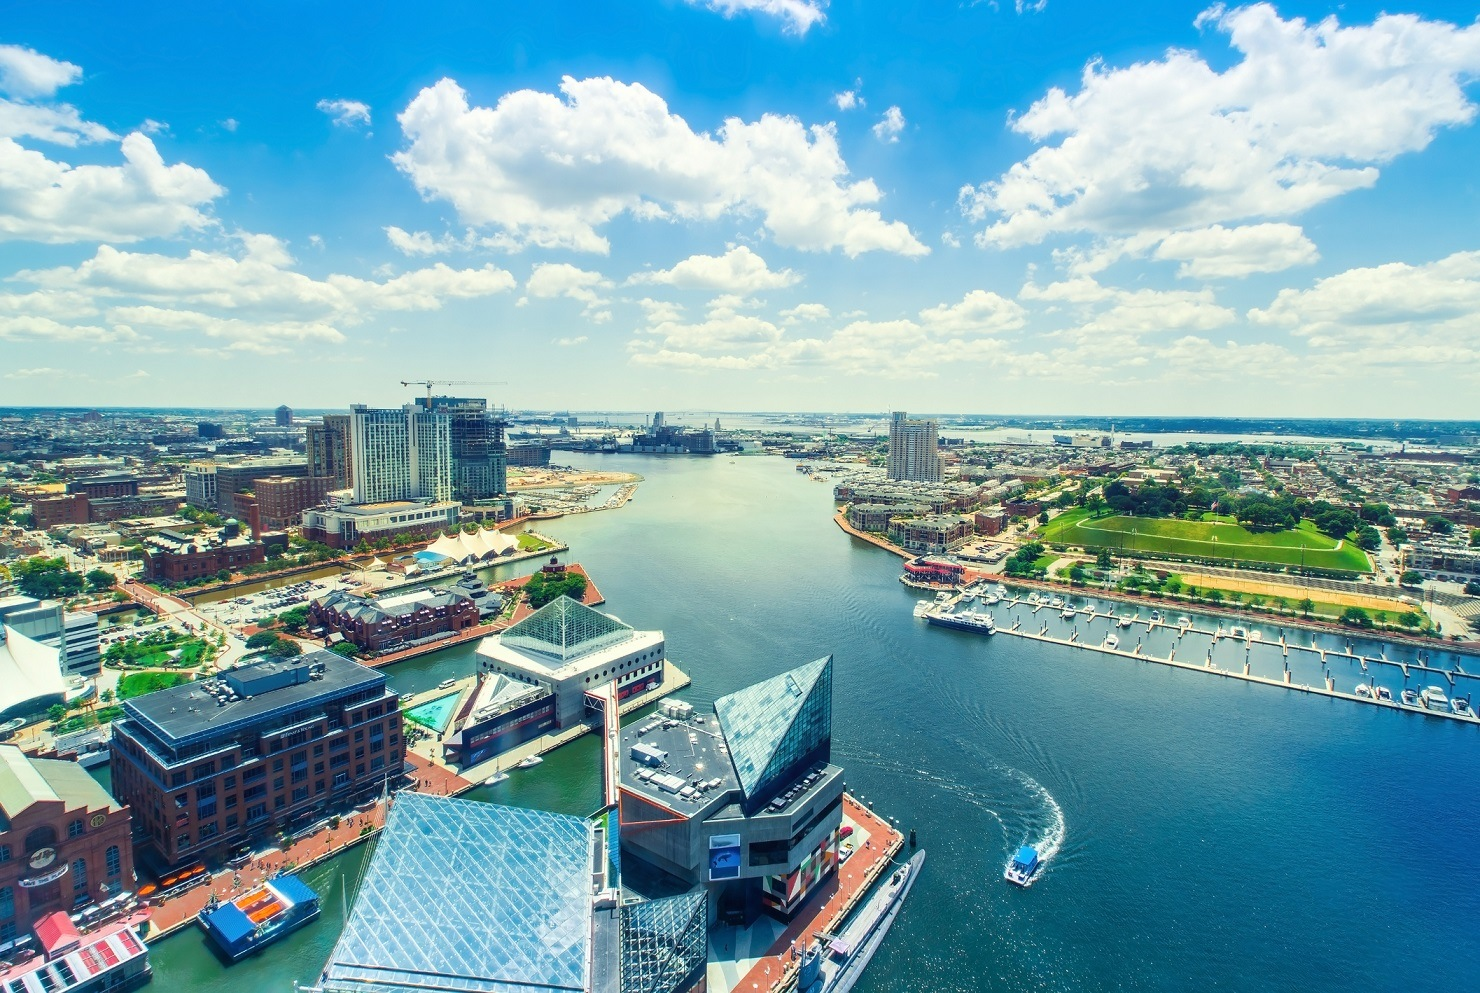 Inner Harbor of Baltimore, Maryland.